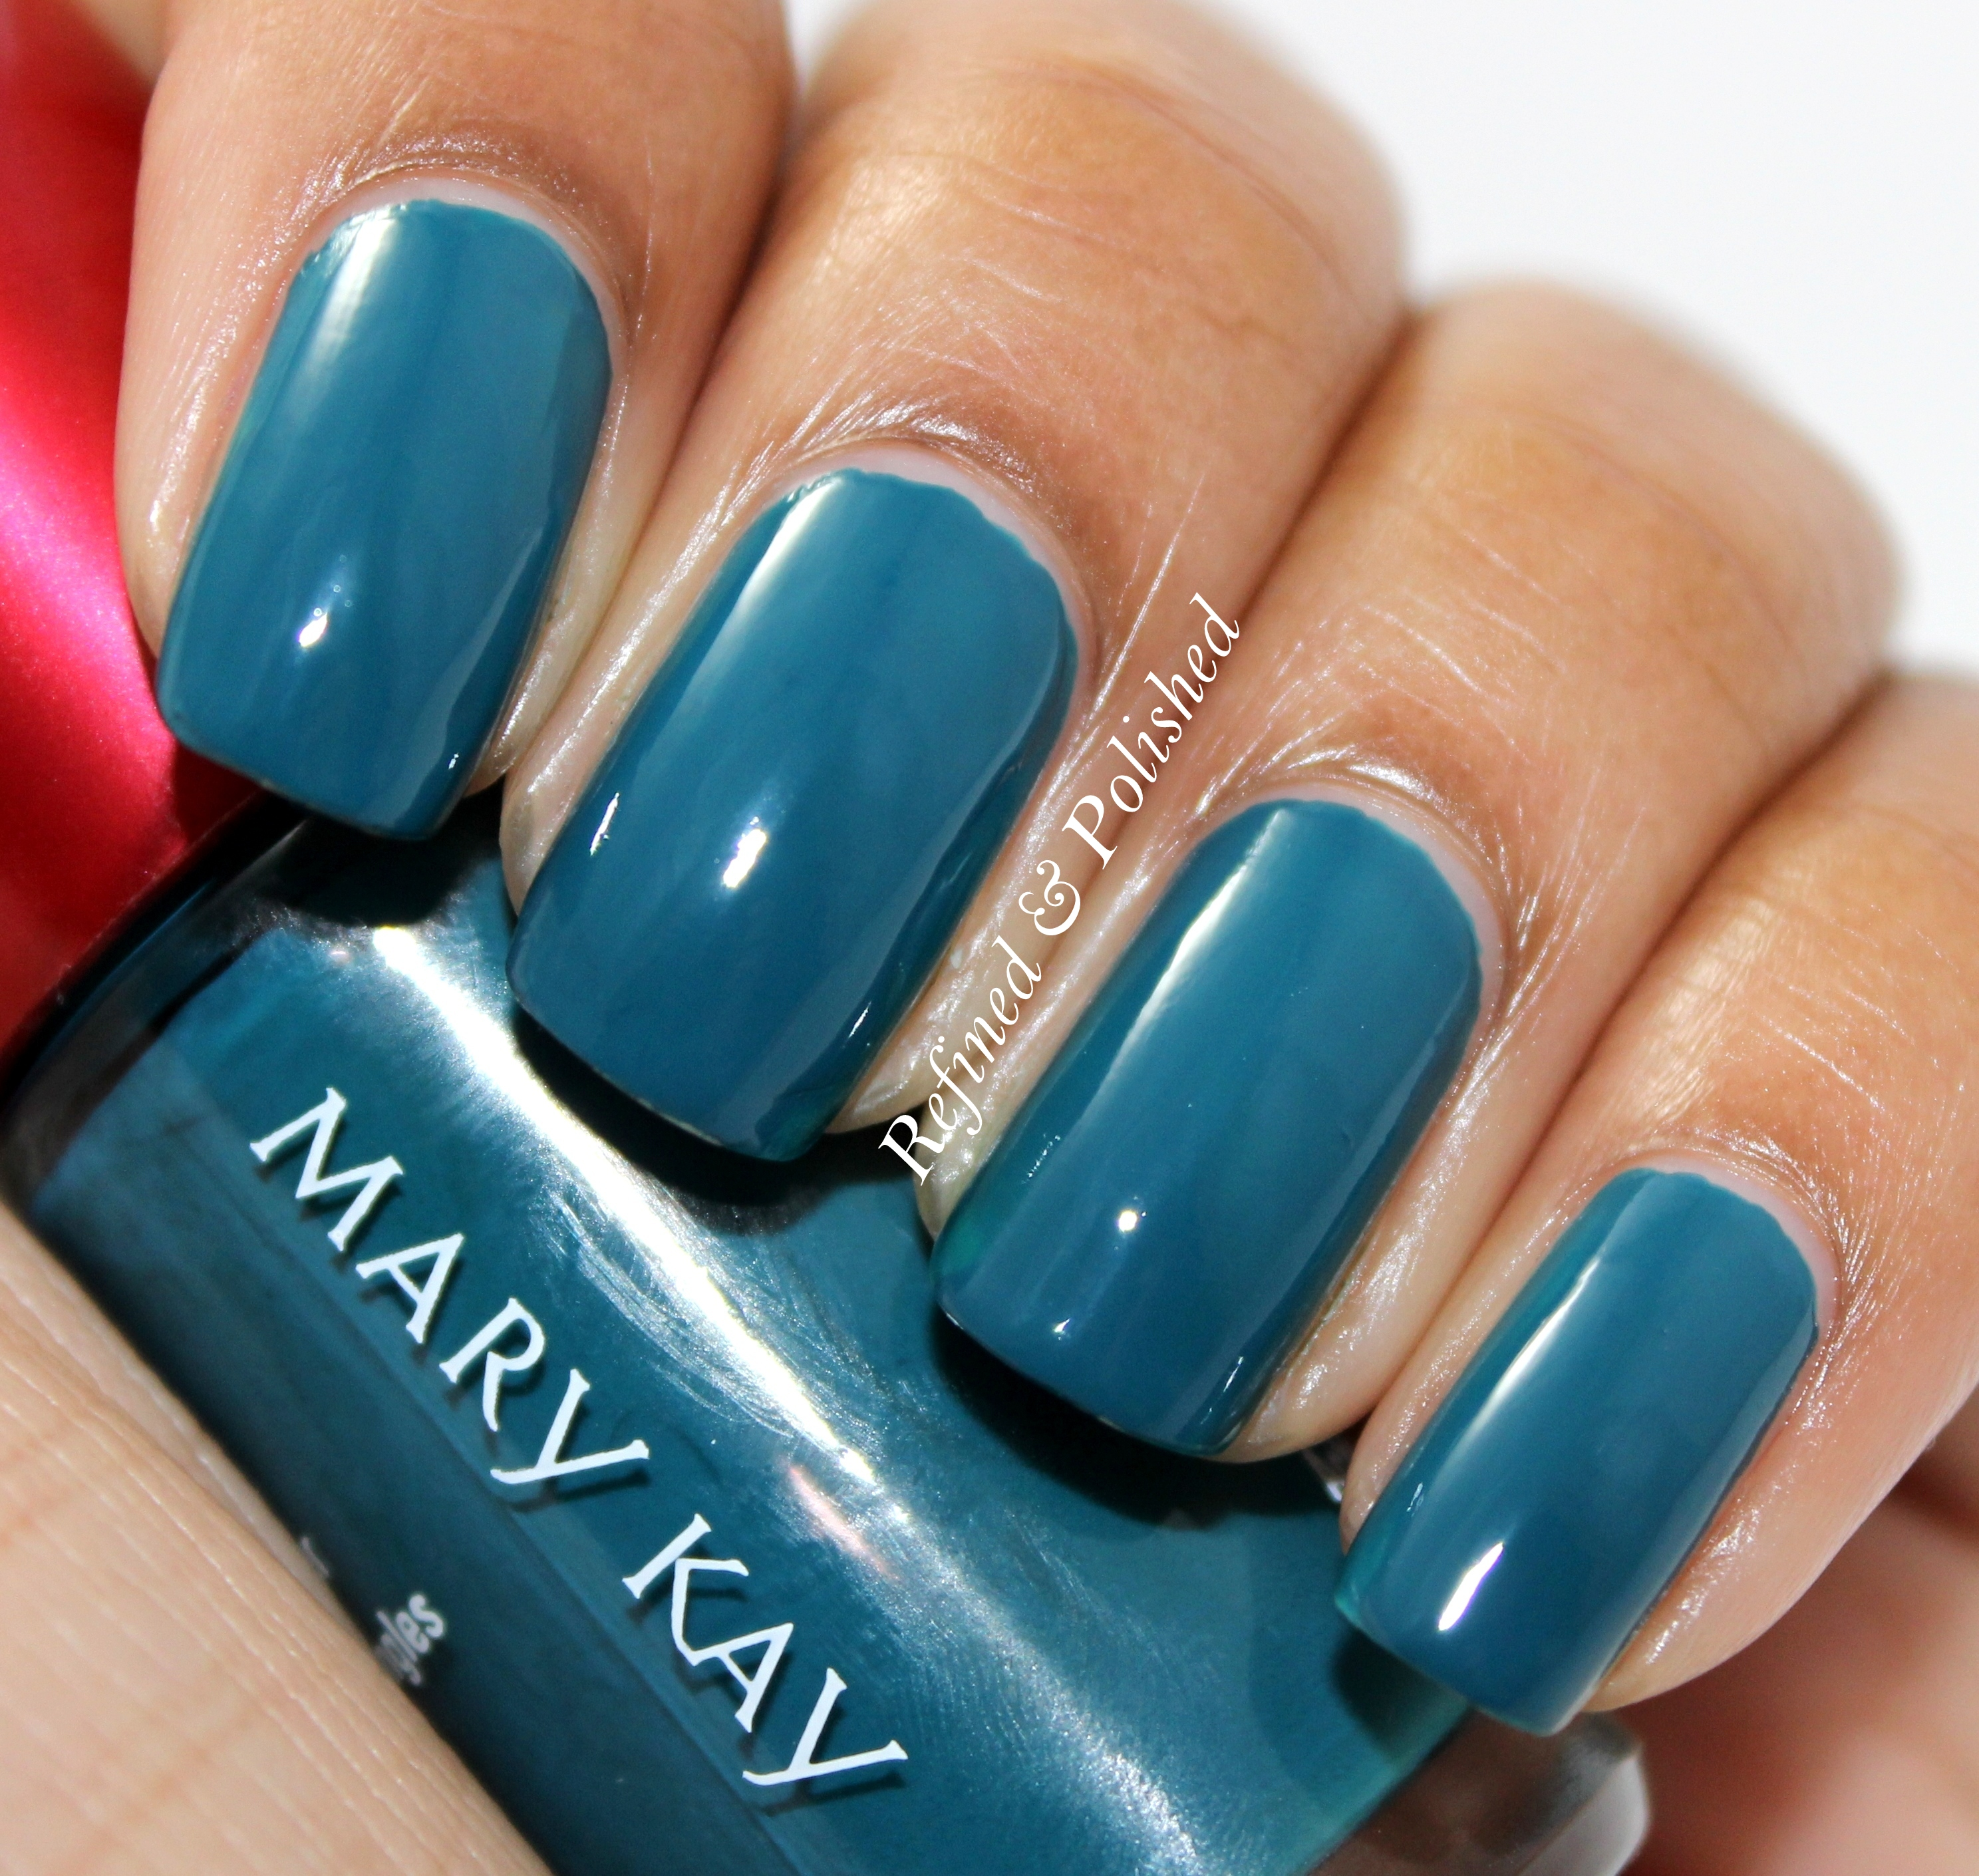 Mary Kay Tempting Teal & Radiant Red - Refined and Polished